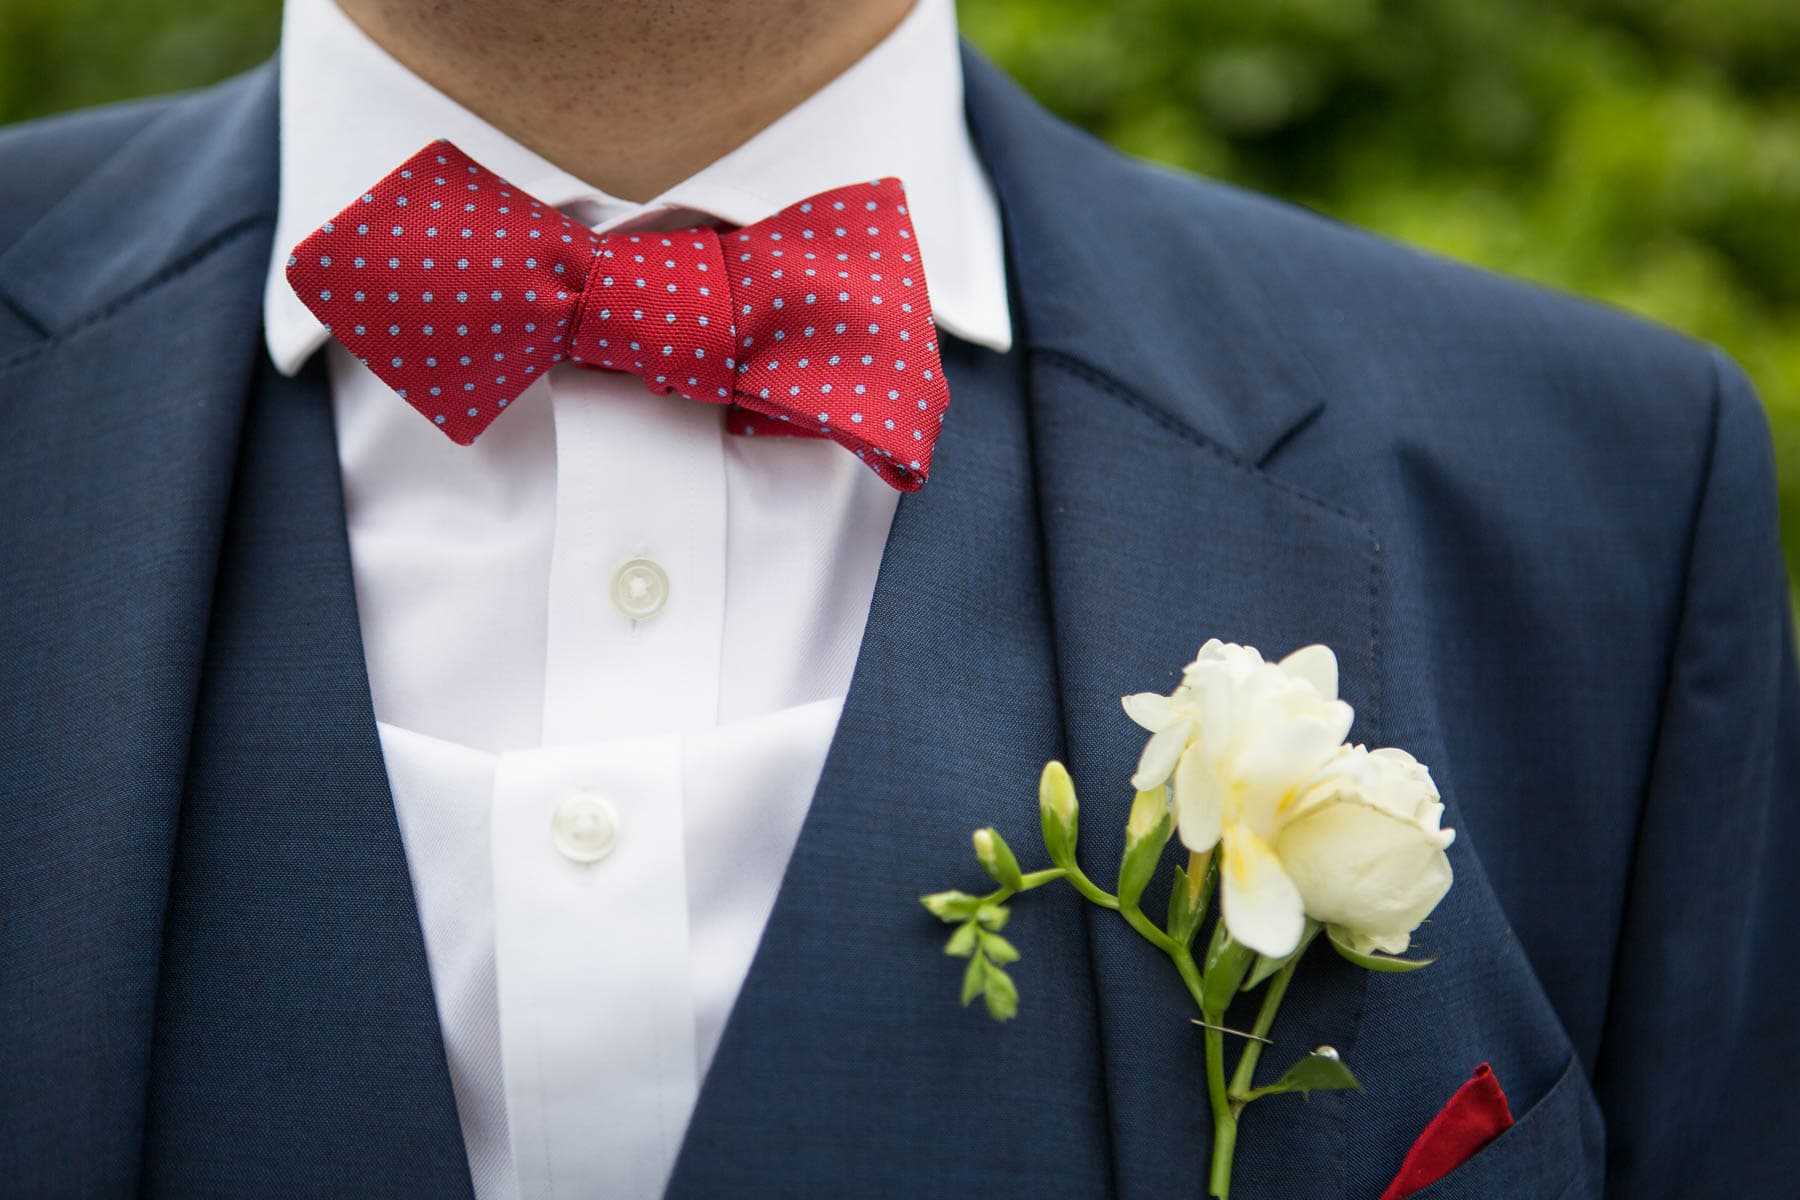 Close up of groom's bowtie and boutonniere